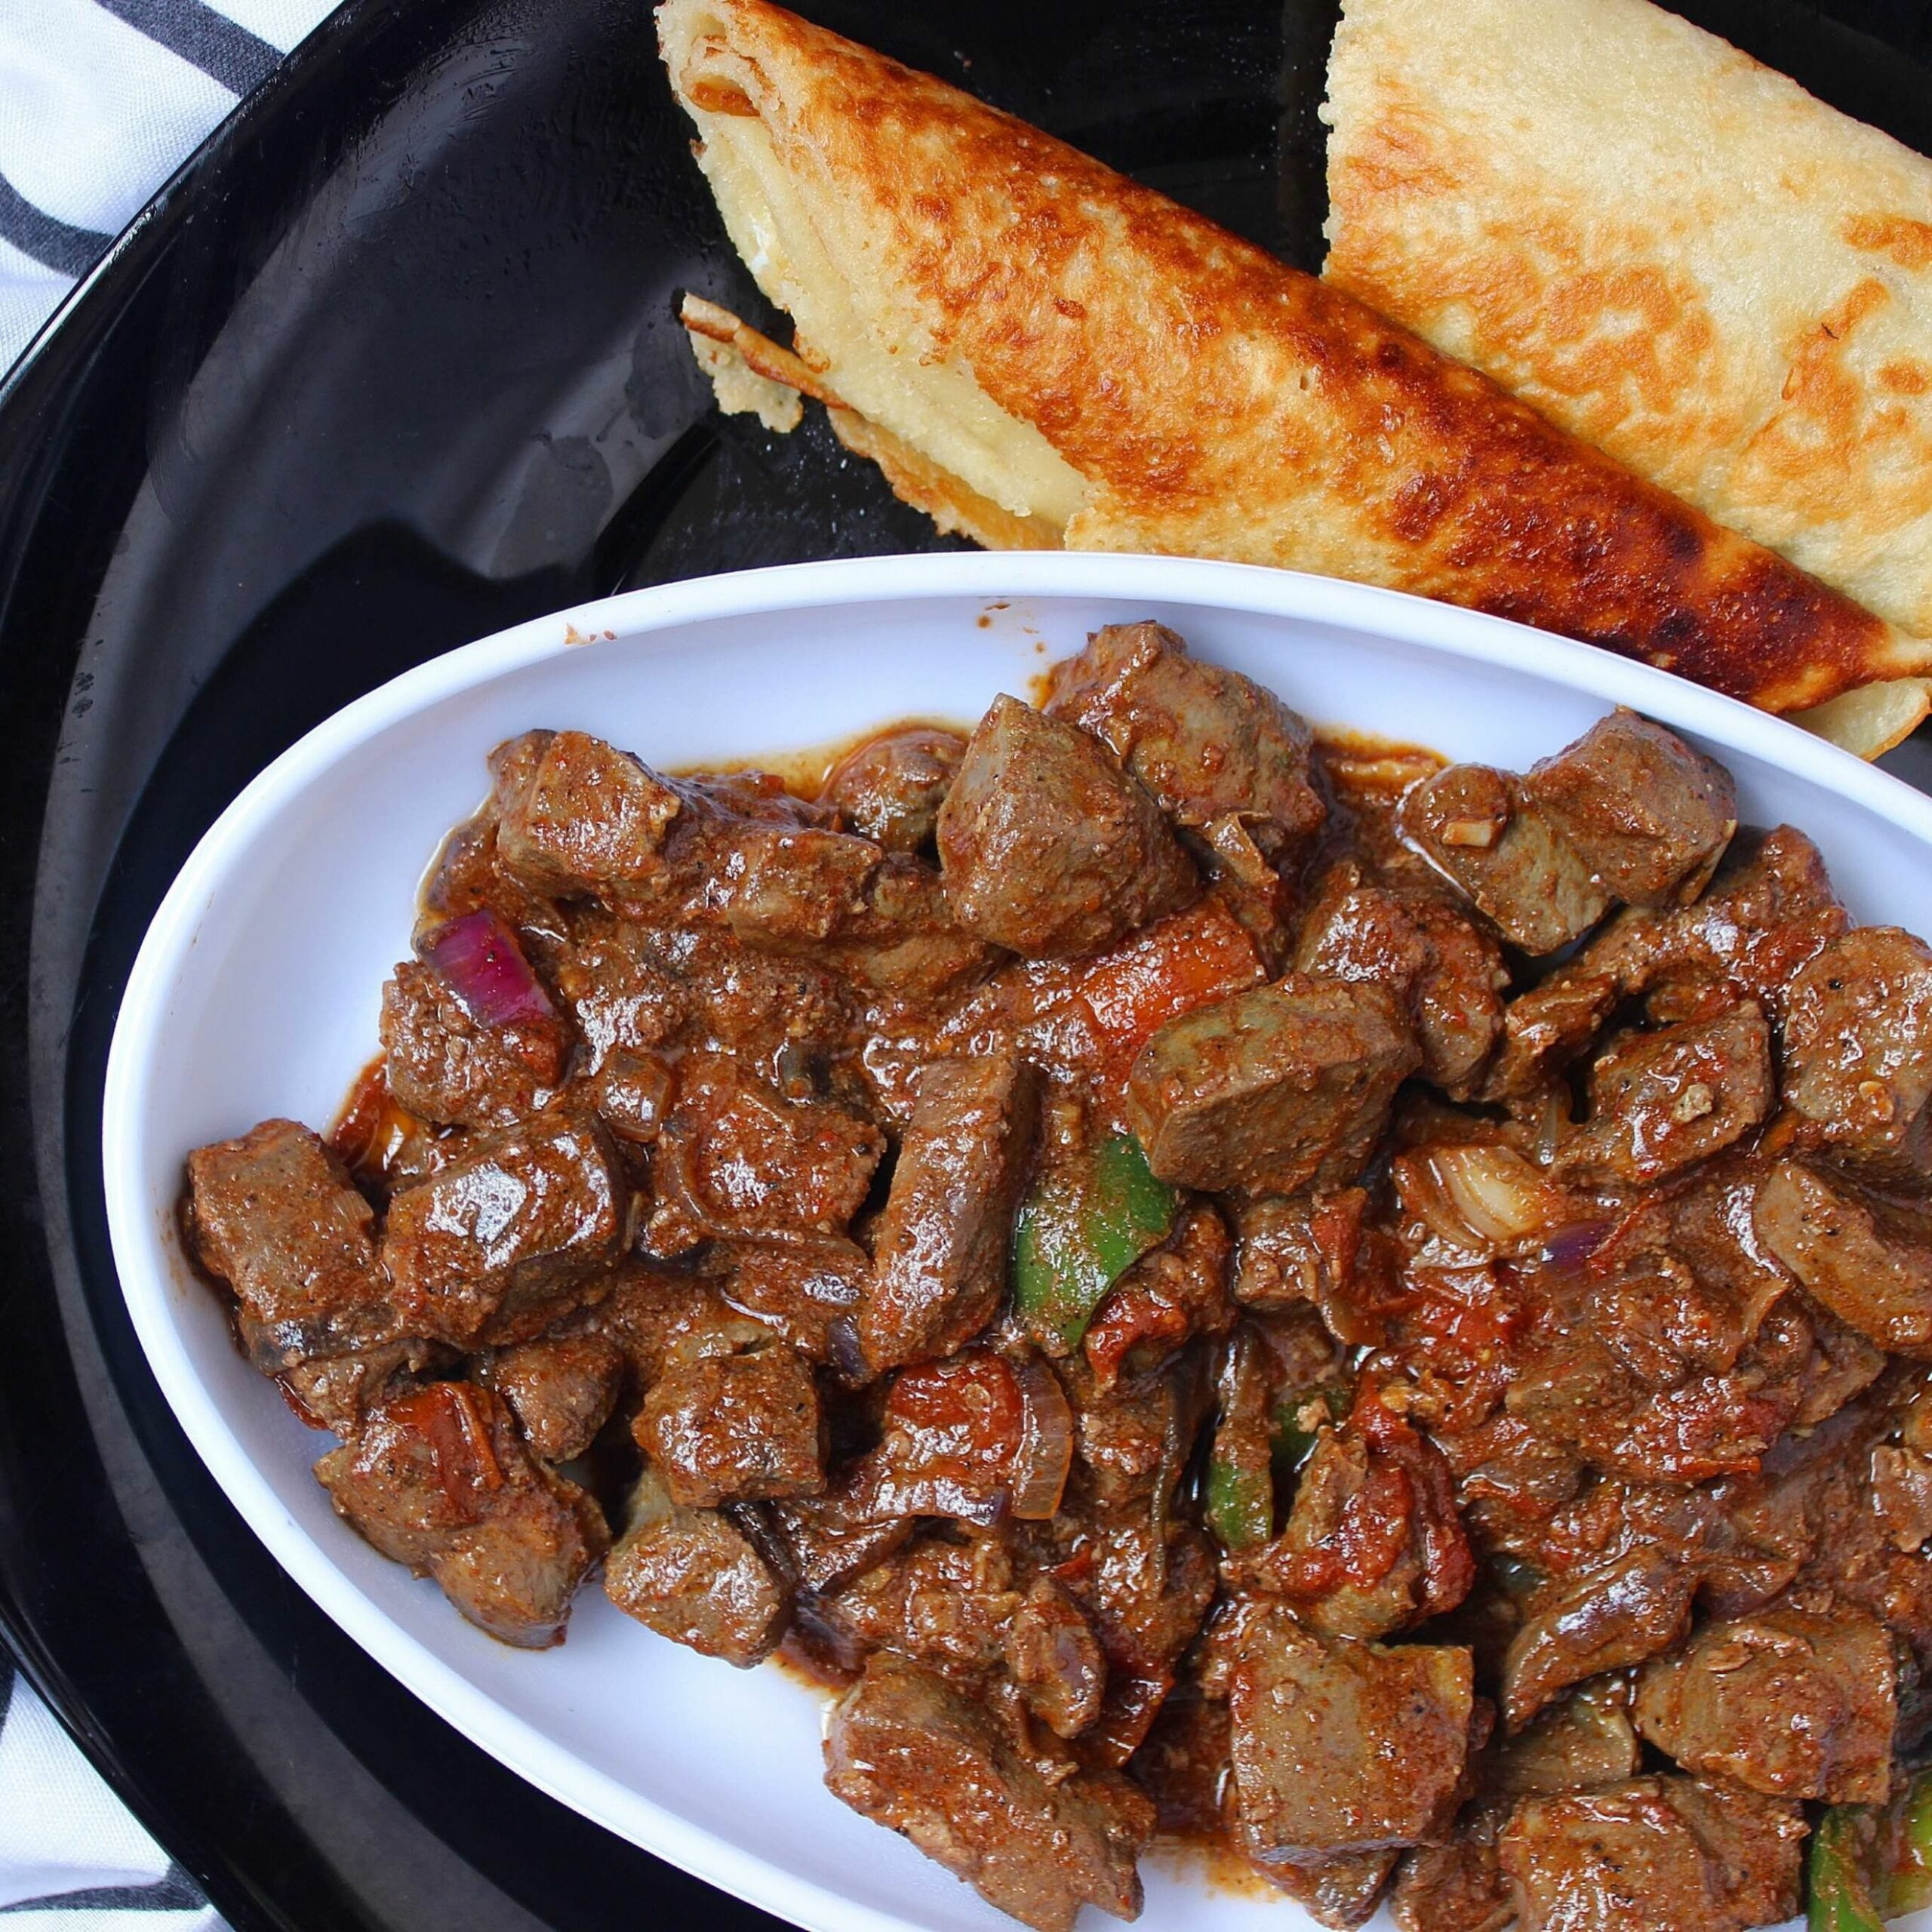 Beef liver Kenyan style | Liver recipes, Food, Cooking recipes - Dinner Recipes Kenya